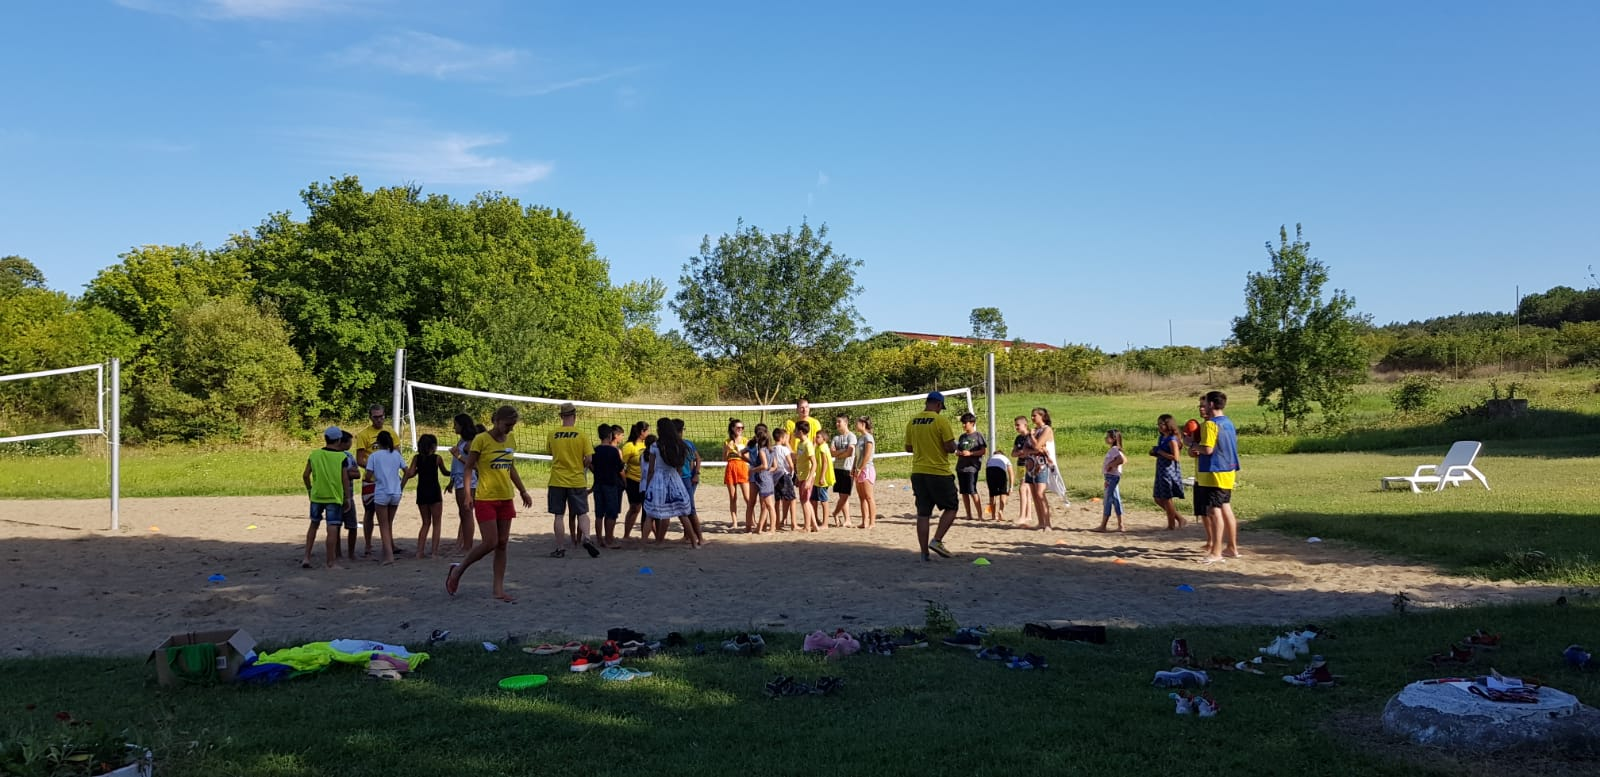 language camp for kids at seaside Z camp, Day 26 - volleyball court - the whole group has gathered to play